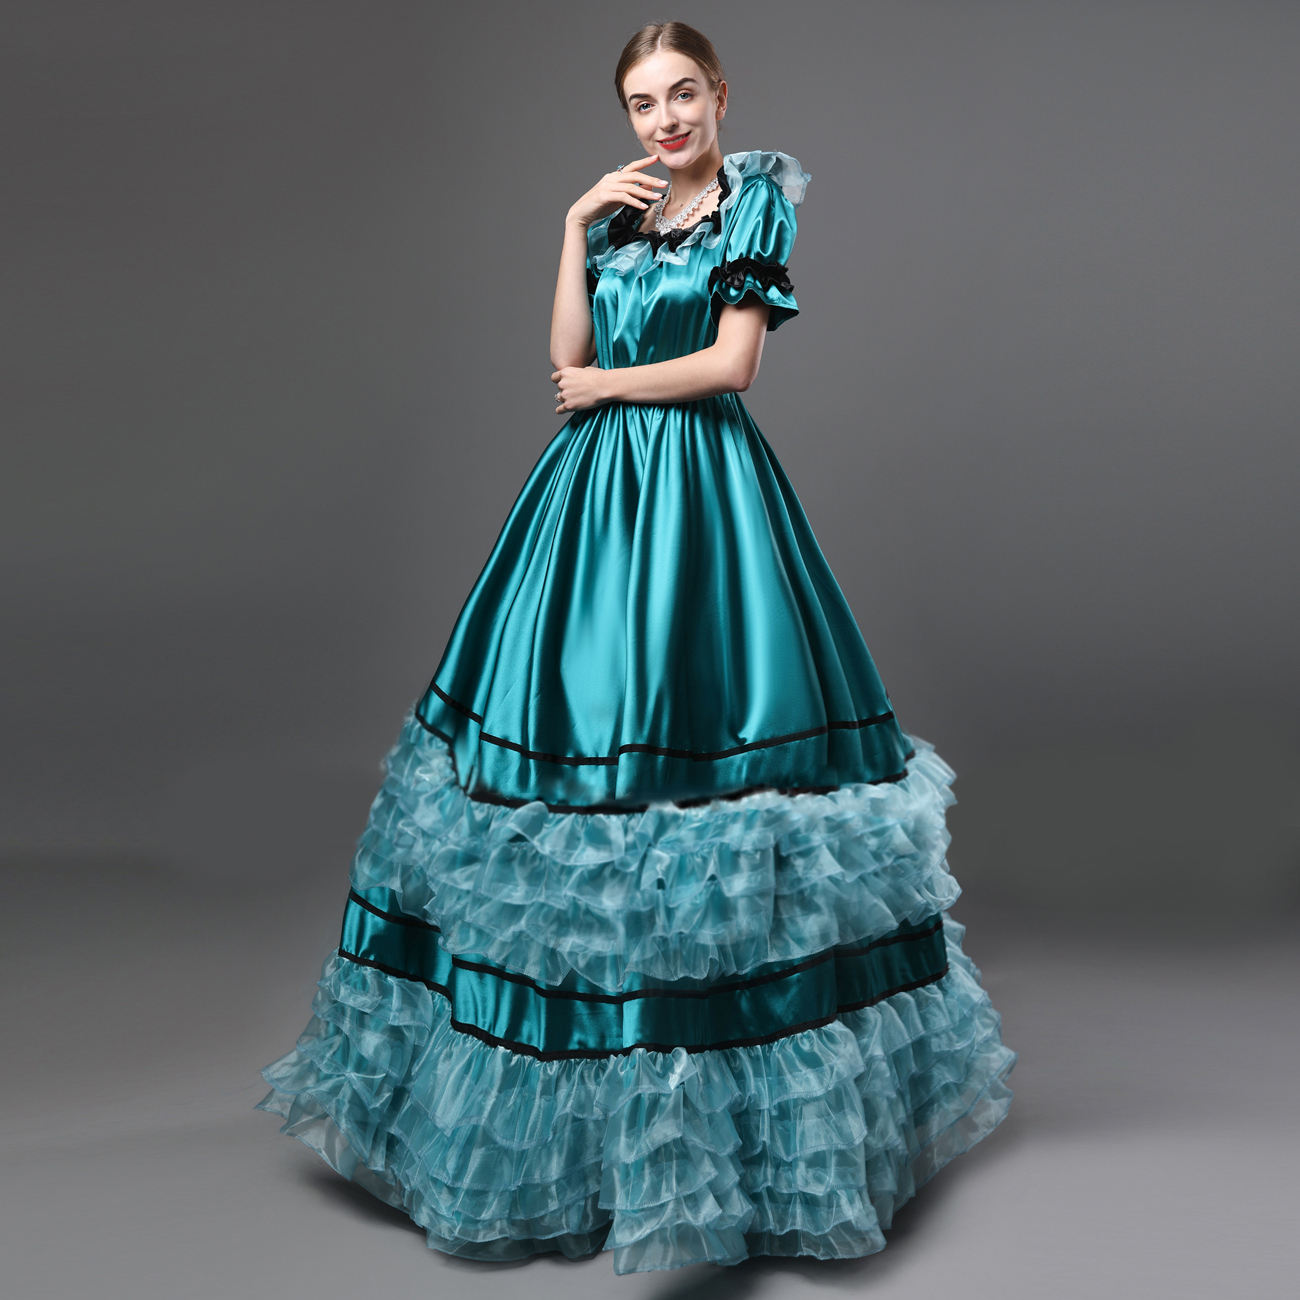 Victorian Southern Belle Masquerade Ball Gown Saloon Girl Dress